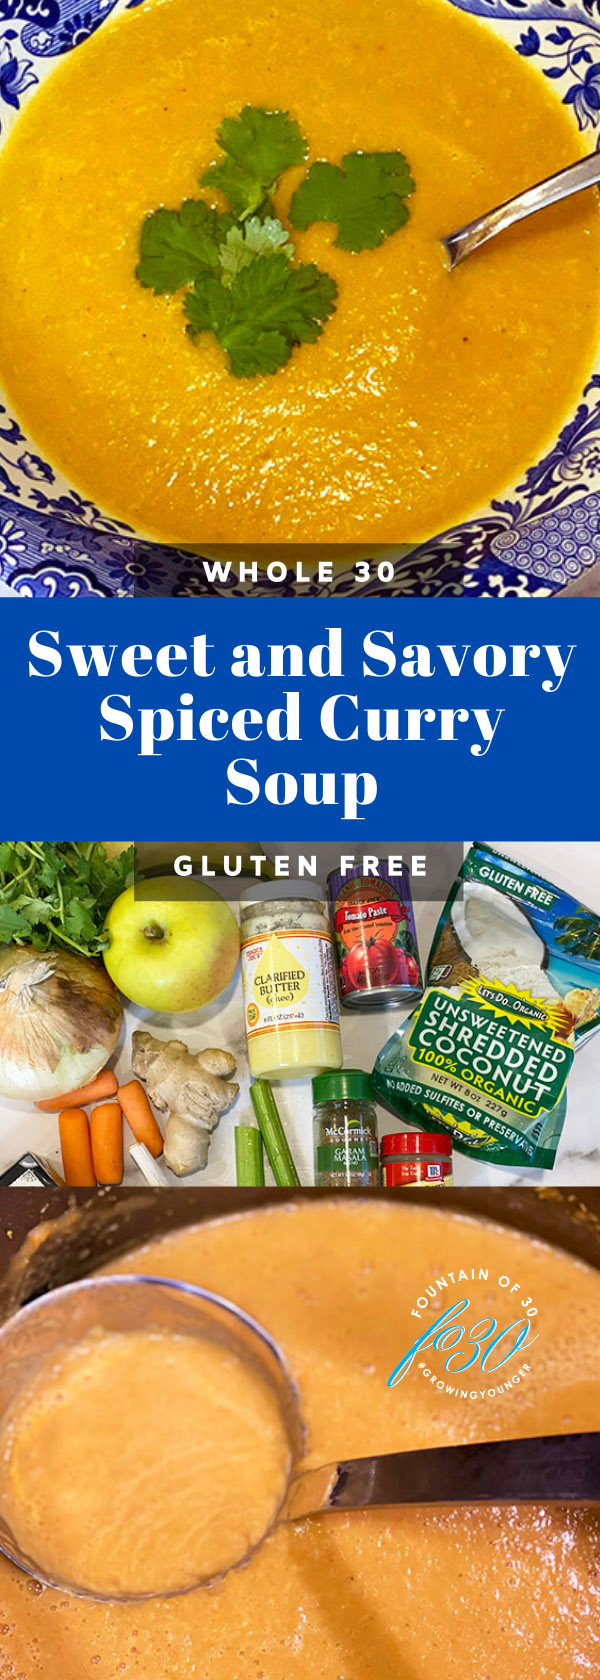 whole30 spiced curry soup fountainof30